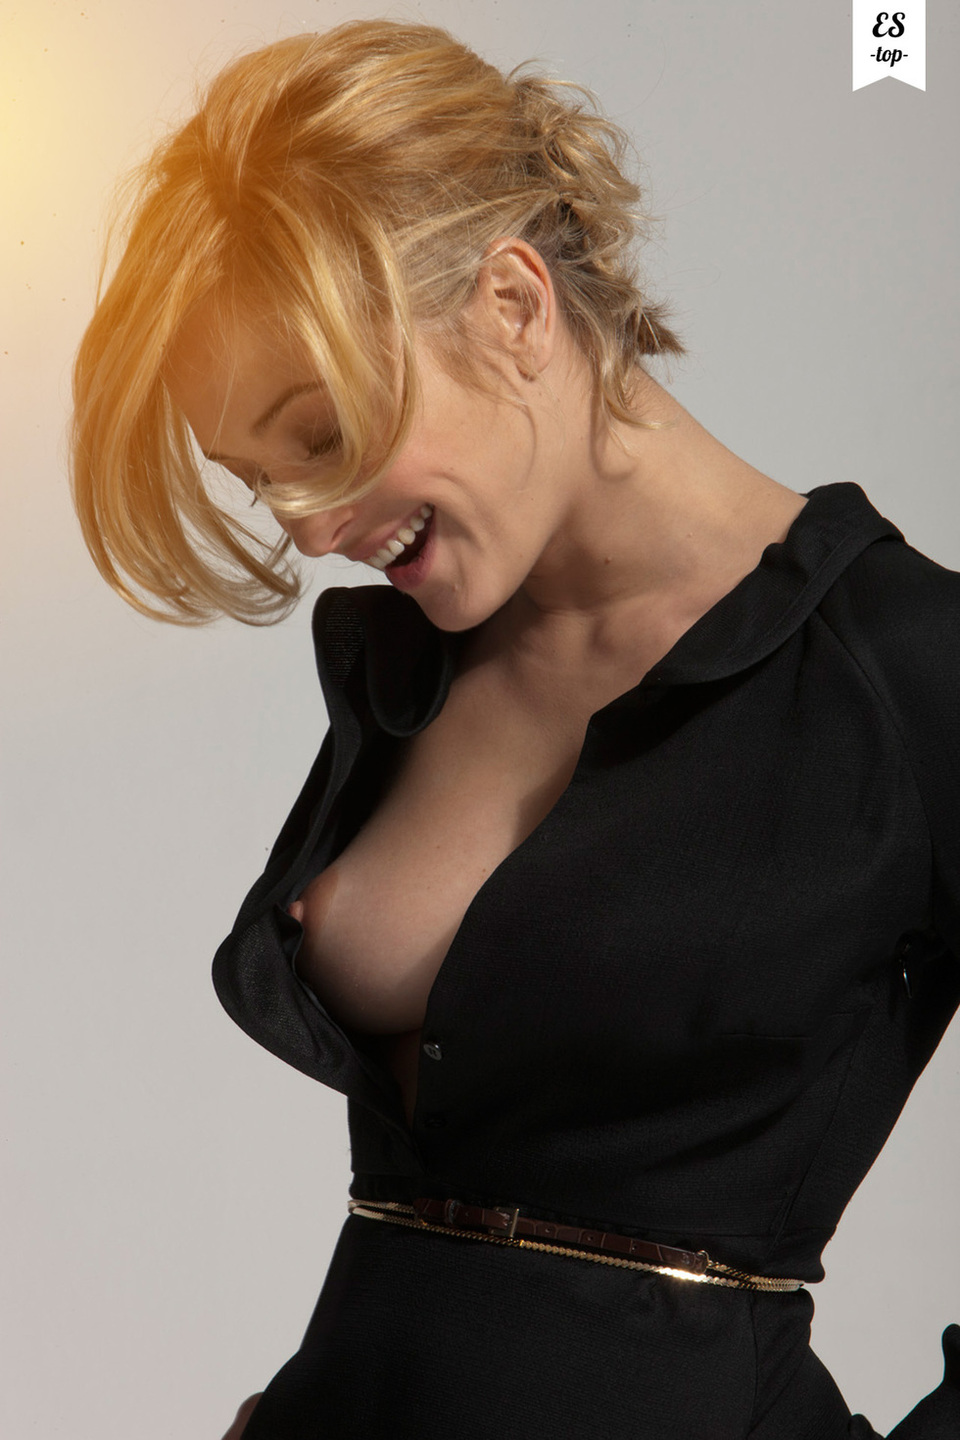 black dress nip slip